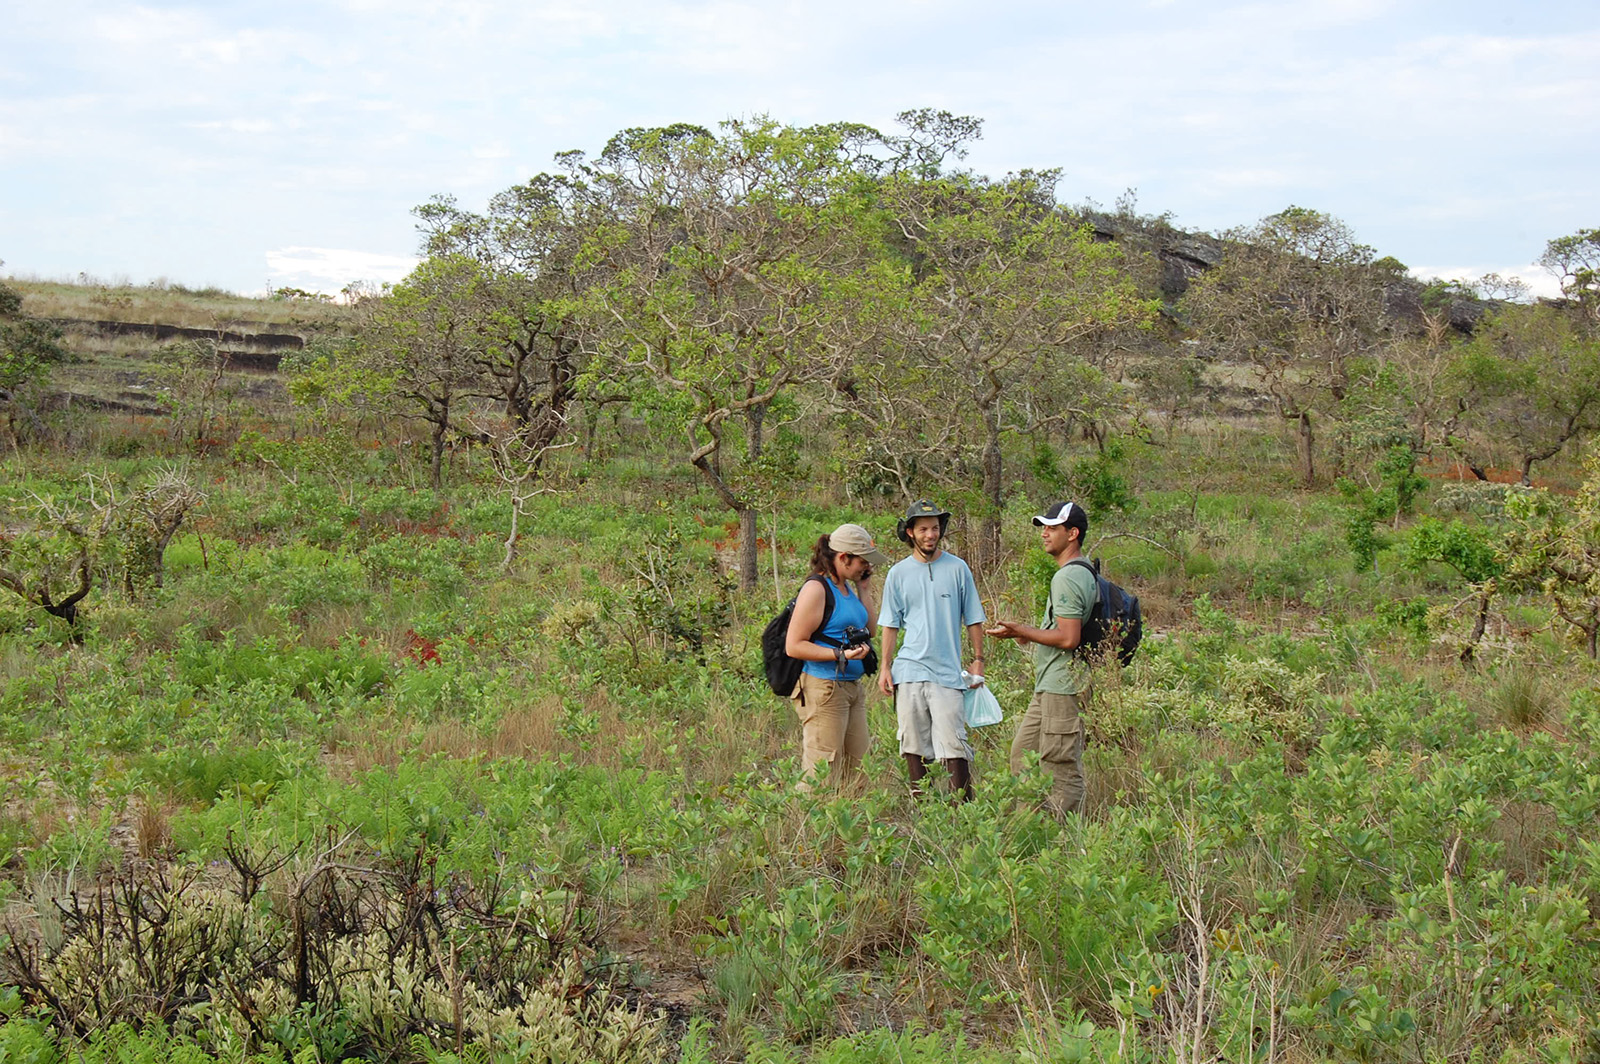 Researchers associated with Dr. Ruy J. V. Alves, standing among the foliage